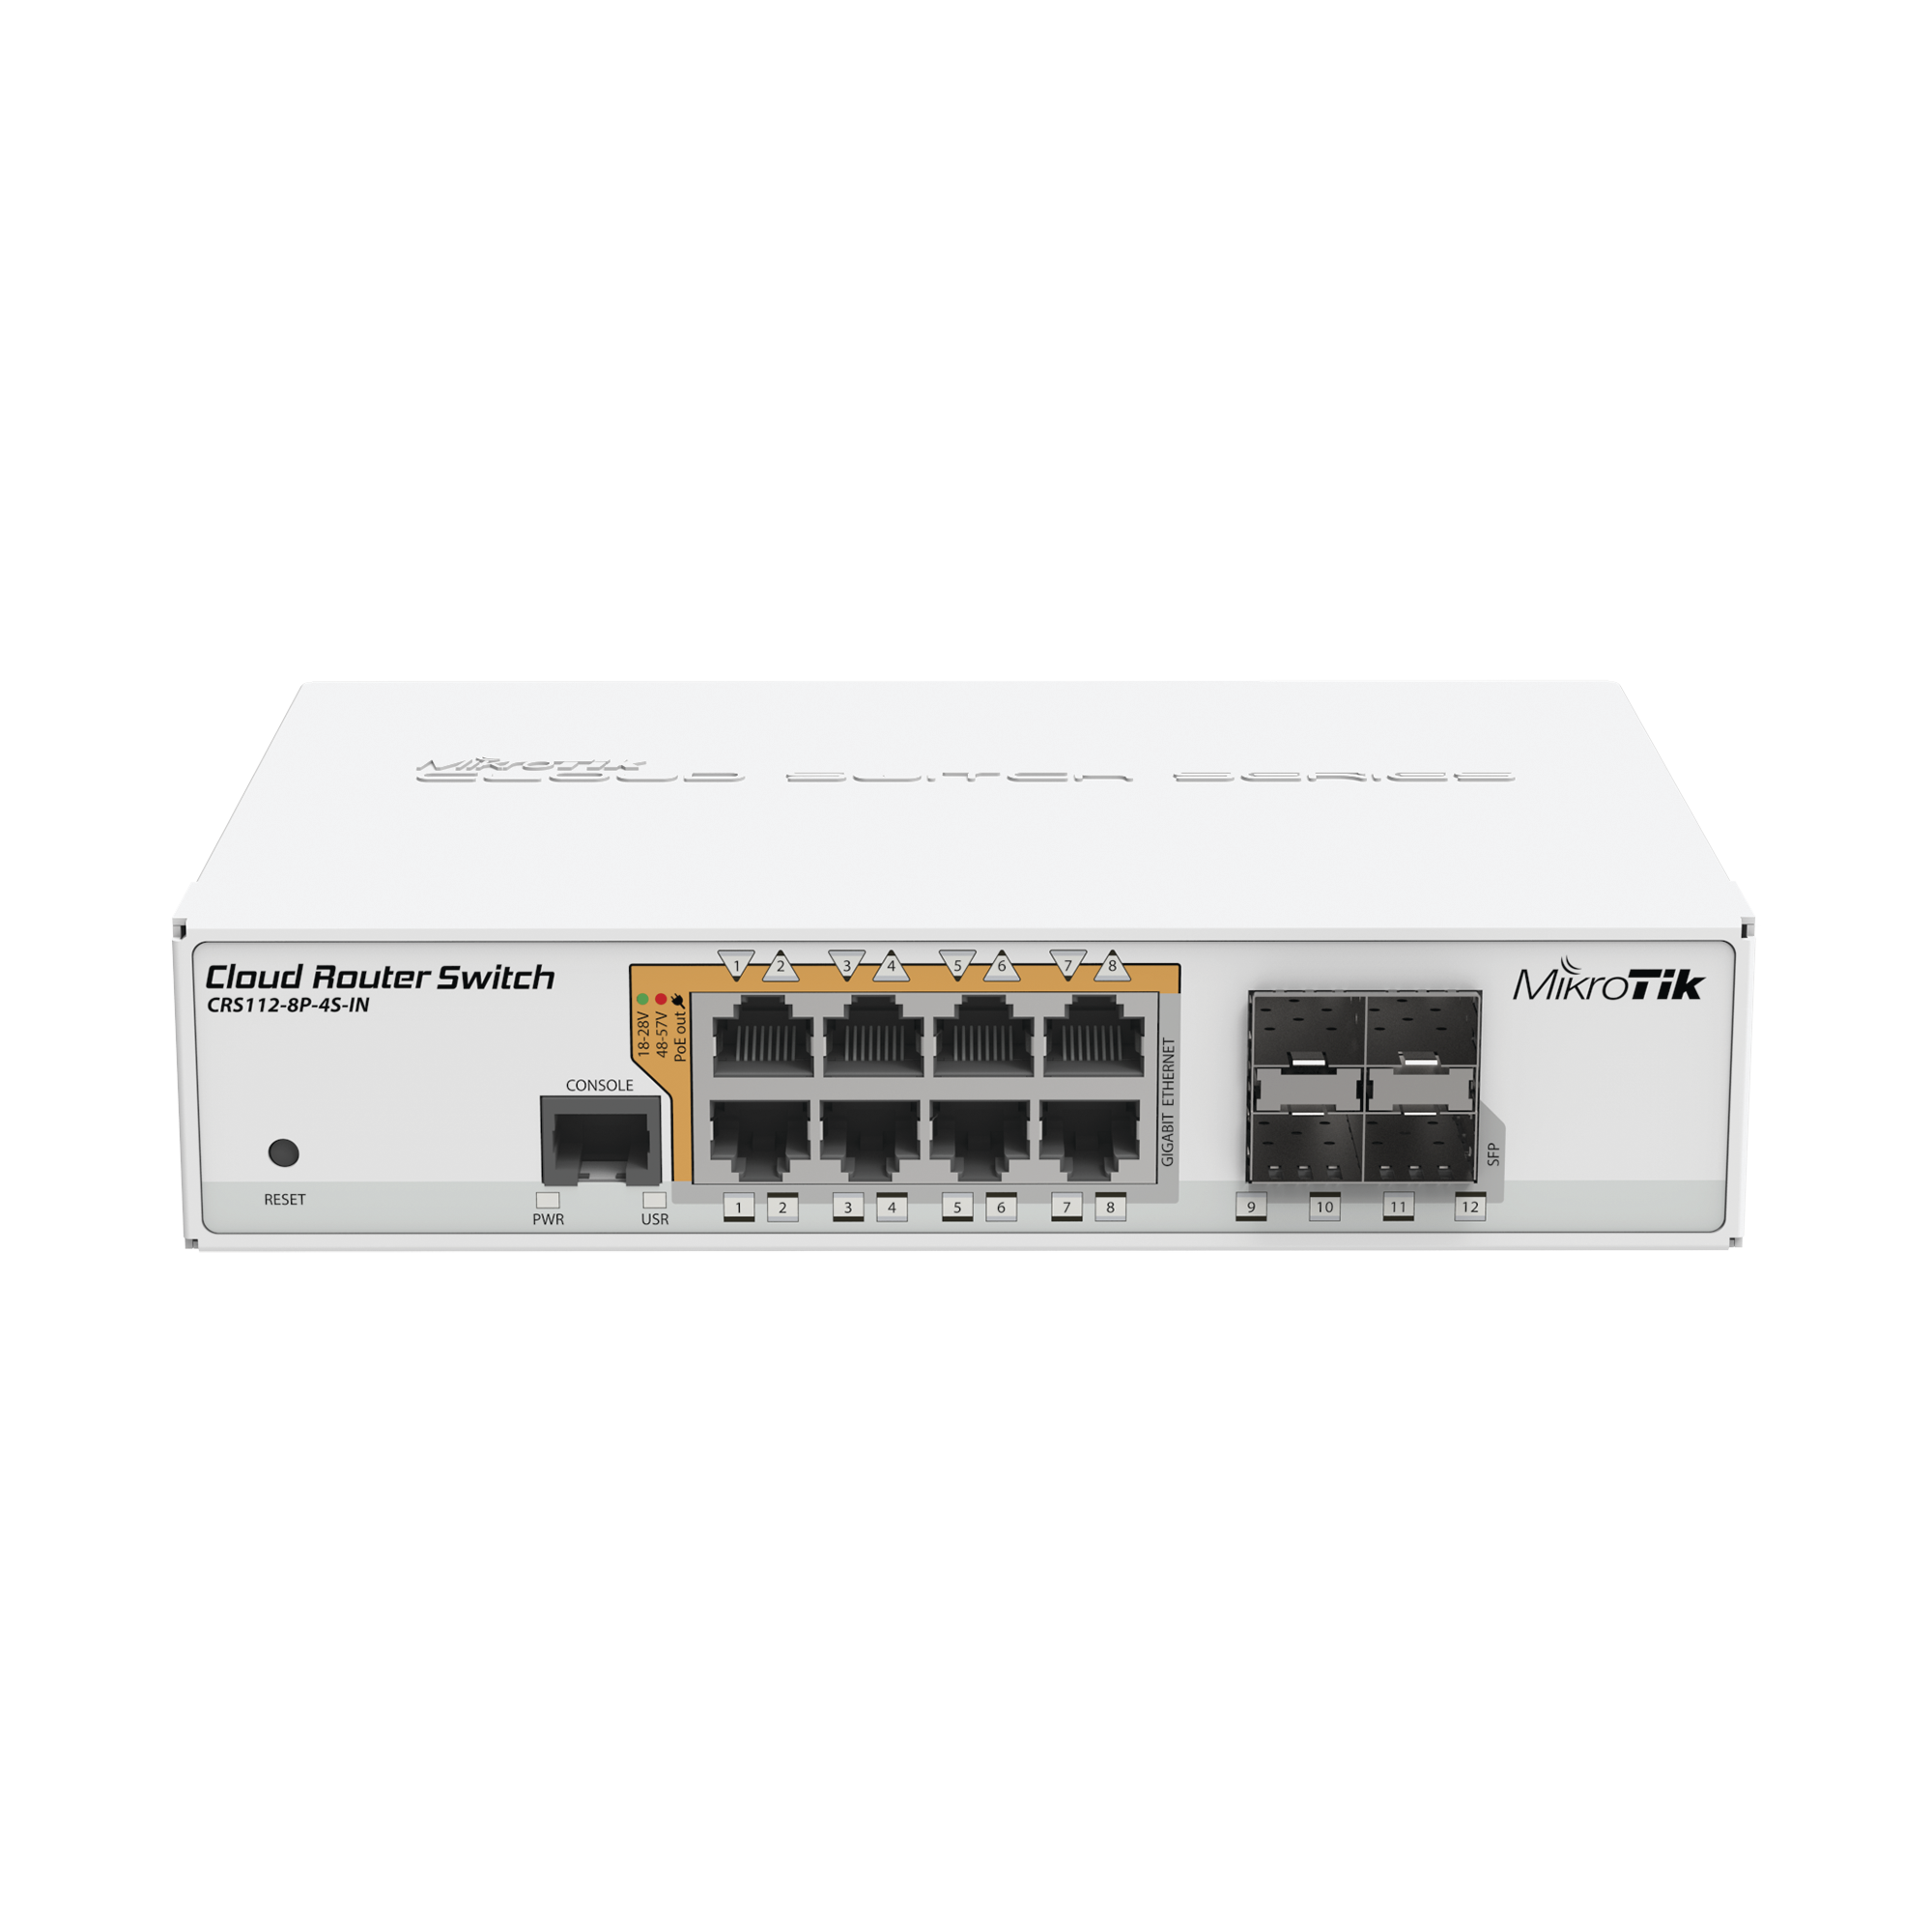 Cloud Router Switch Administrable L3, 8 puertos 10/100/1000 Mbps c/PoE Pasivo ó 802.3af/at, 4 Puertos SFP